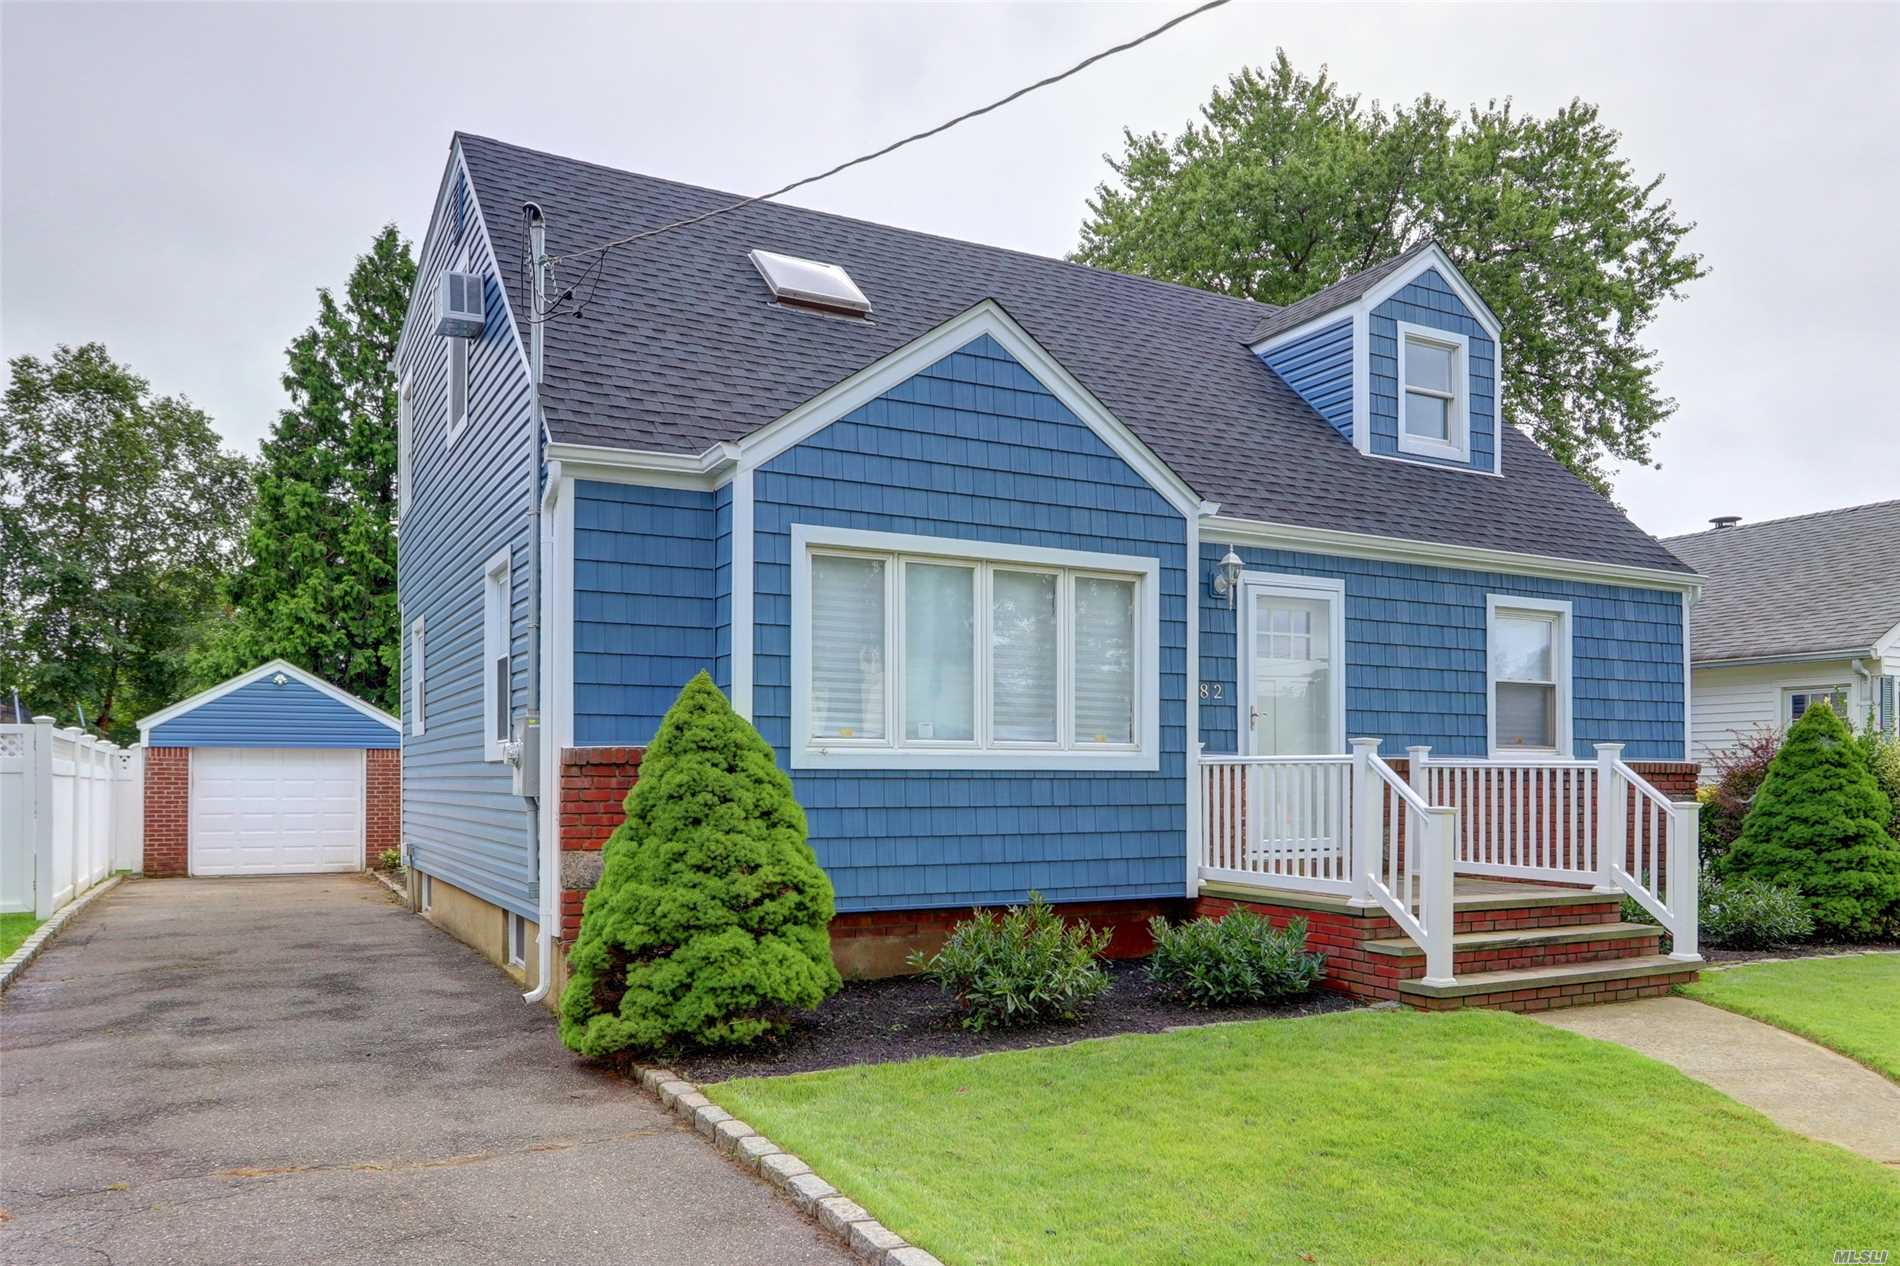 Completely Renovated Expanded Cape Cod Offers: Eik W/ Stainless Steal Apps, Granite Counters, Subway Tile Back Splash, Hwflrs Throughout, Dining Area, Lt, Fam Rm, 2 Full New Bathrooms, Full Part Fin Bsmt, Storage, Utilities, Updated Elec, 1 Car Garage , Beautiful Deck, Low Taxes, Oceanside Schools District 11, By Appt Only